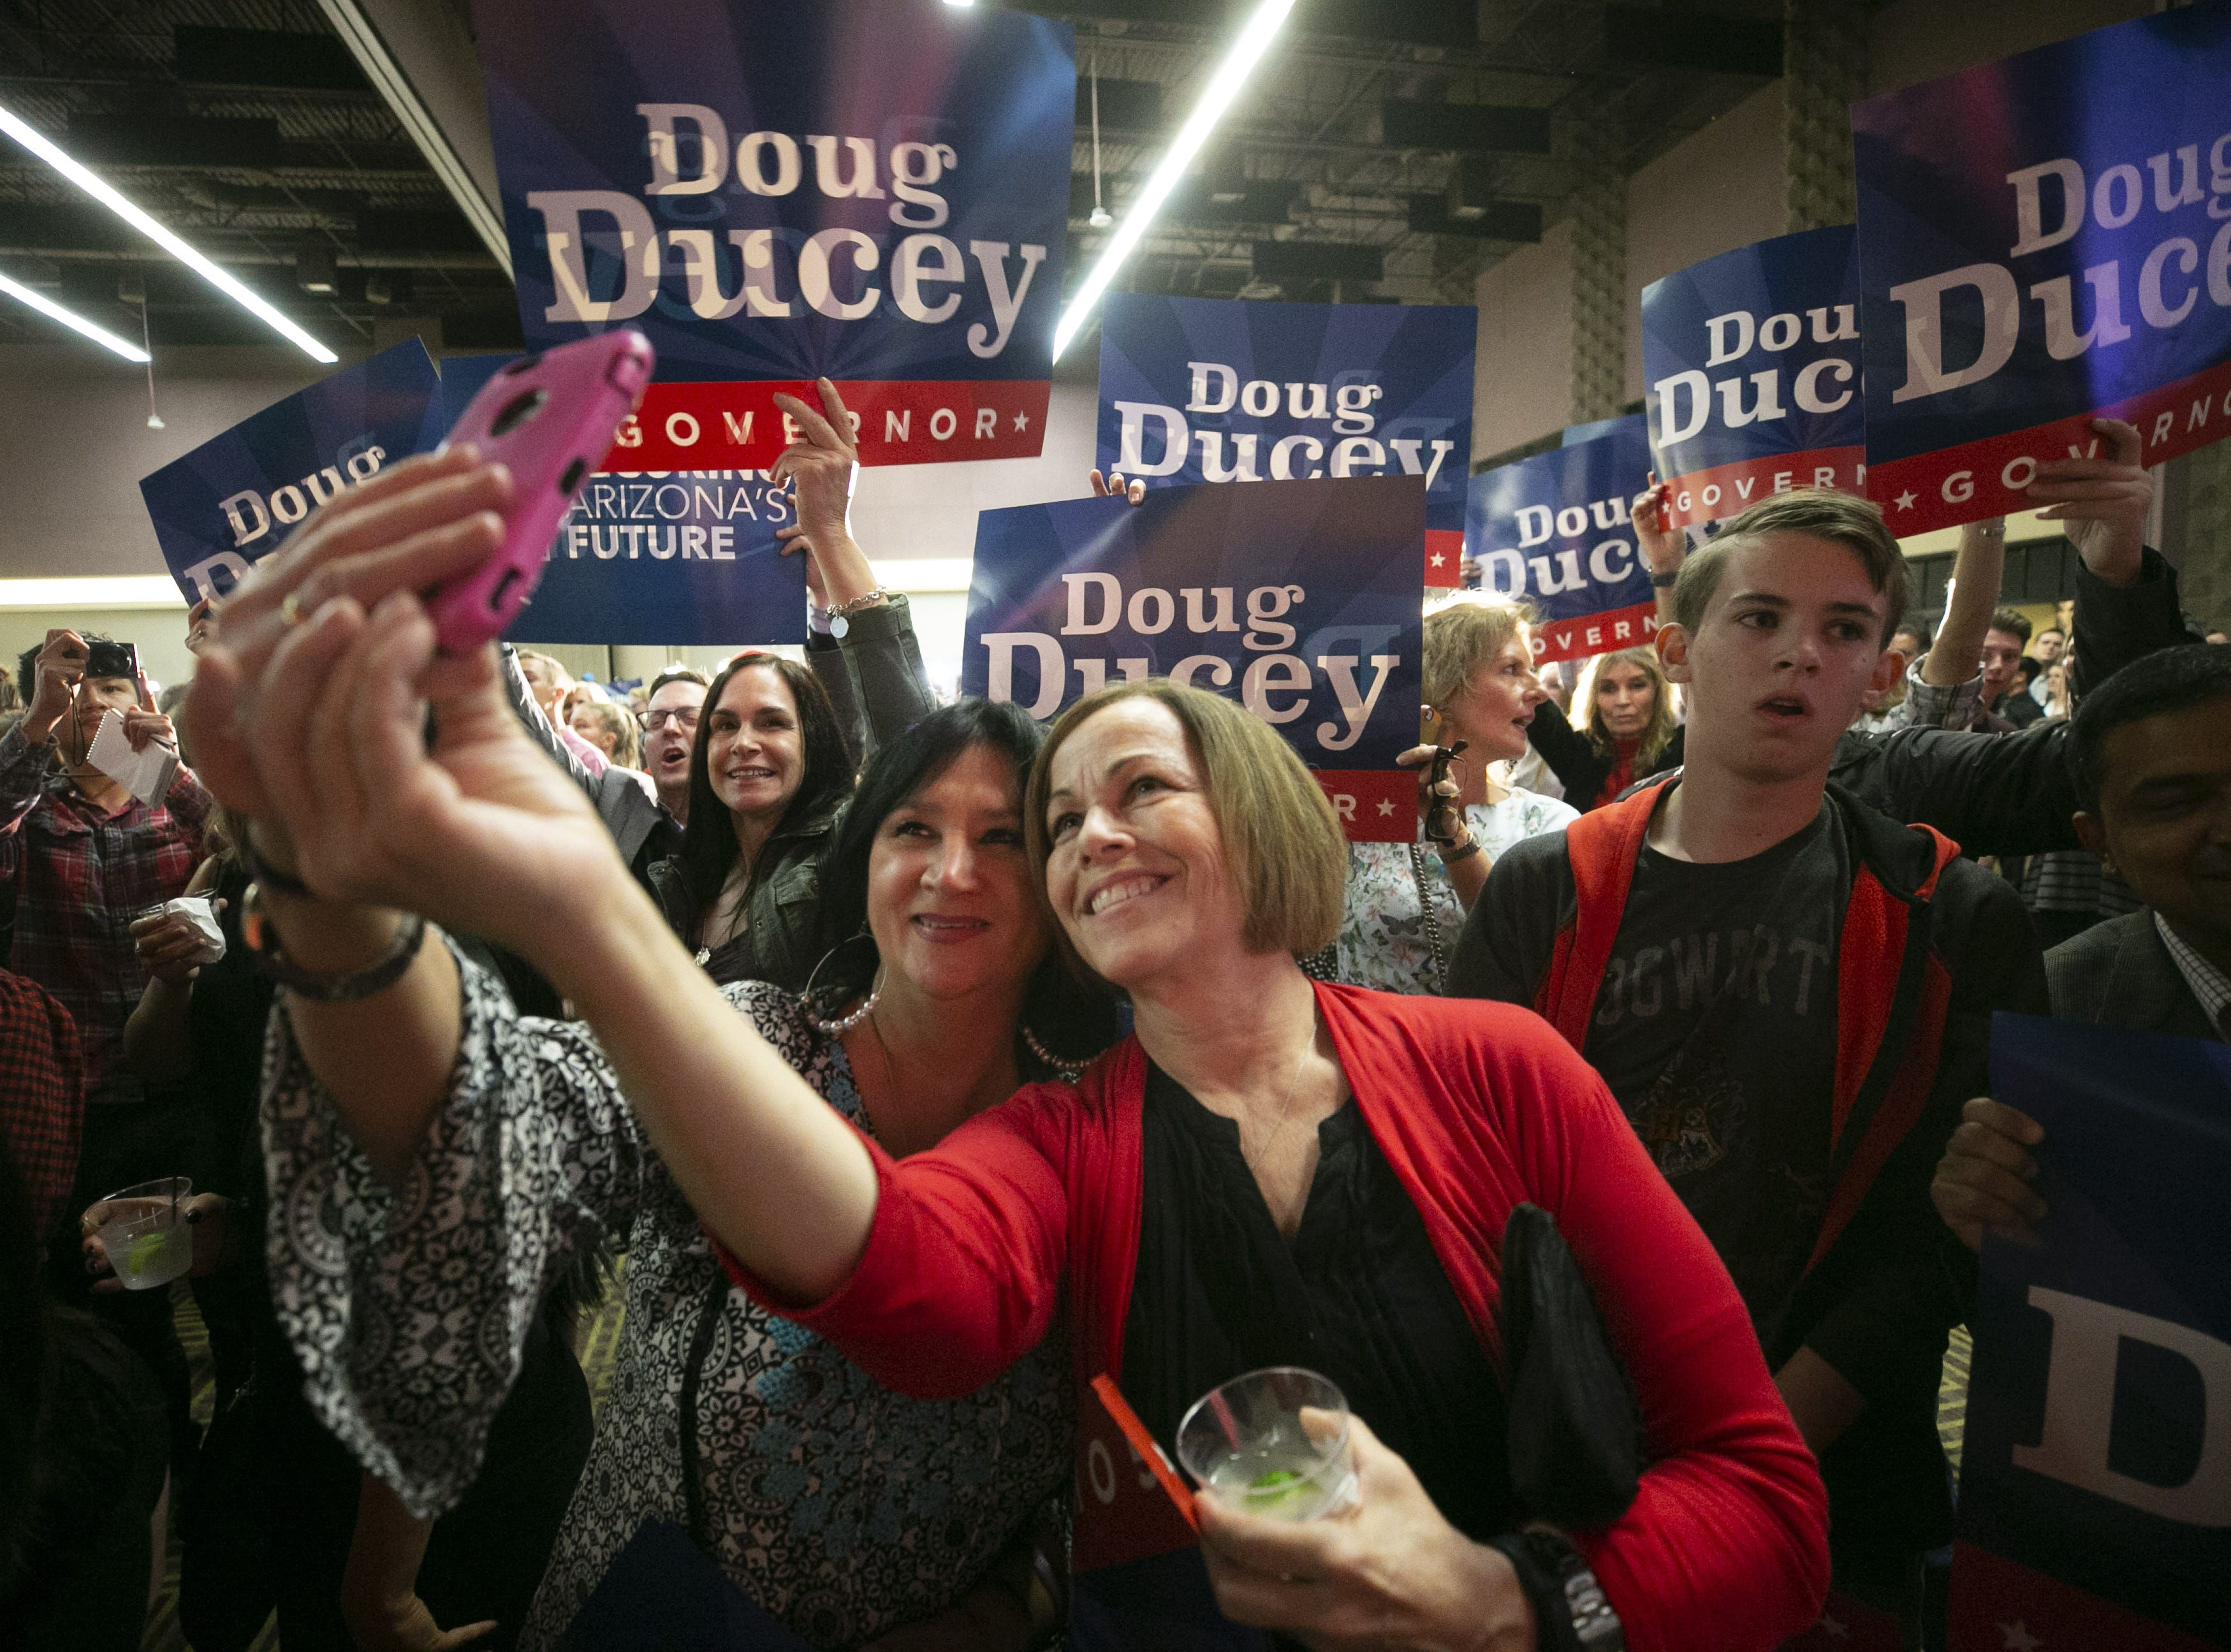 Gov. Doug Ducey supporters take a selfie before Ducey speaks at the Republican watch party at the DoubleTree Resort in Scottsdale on  Nov. 6, 2018.